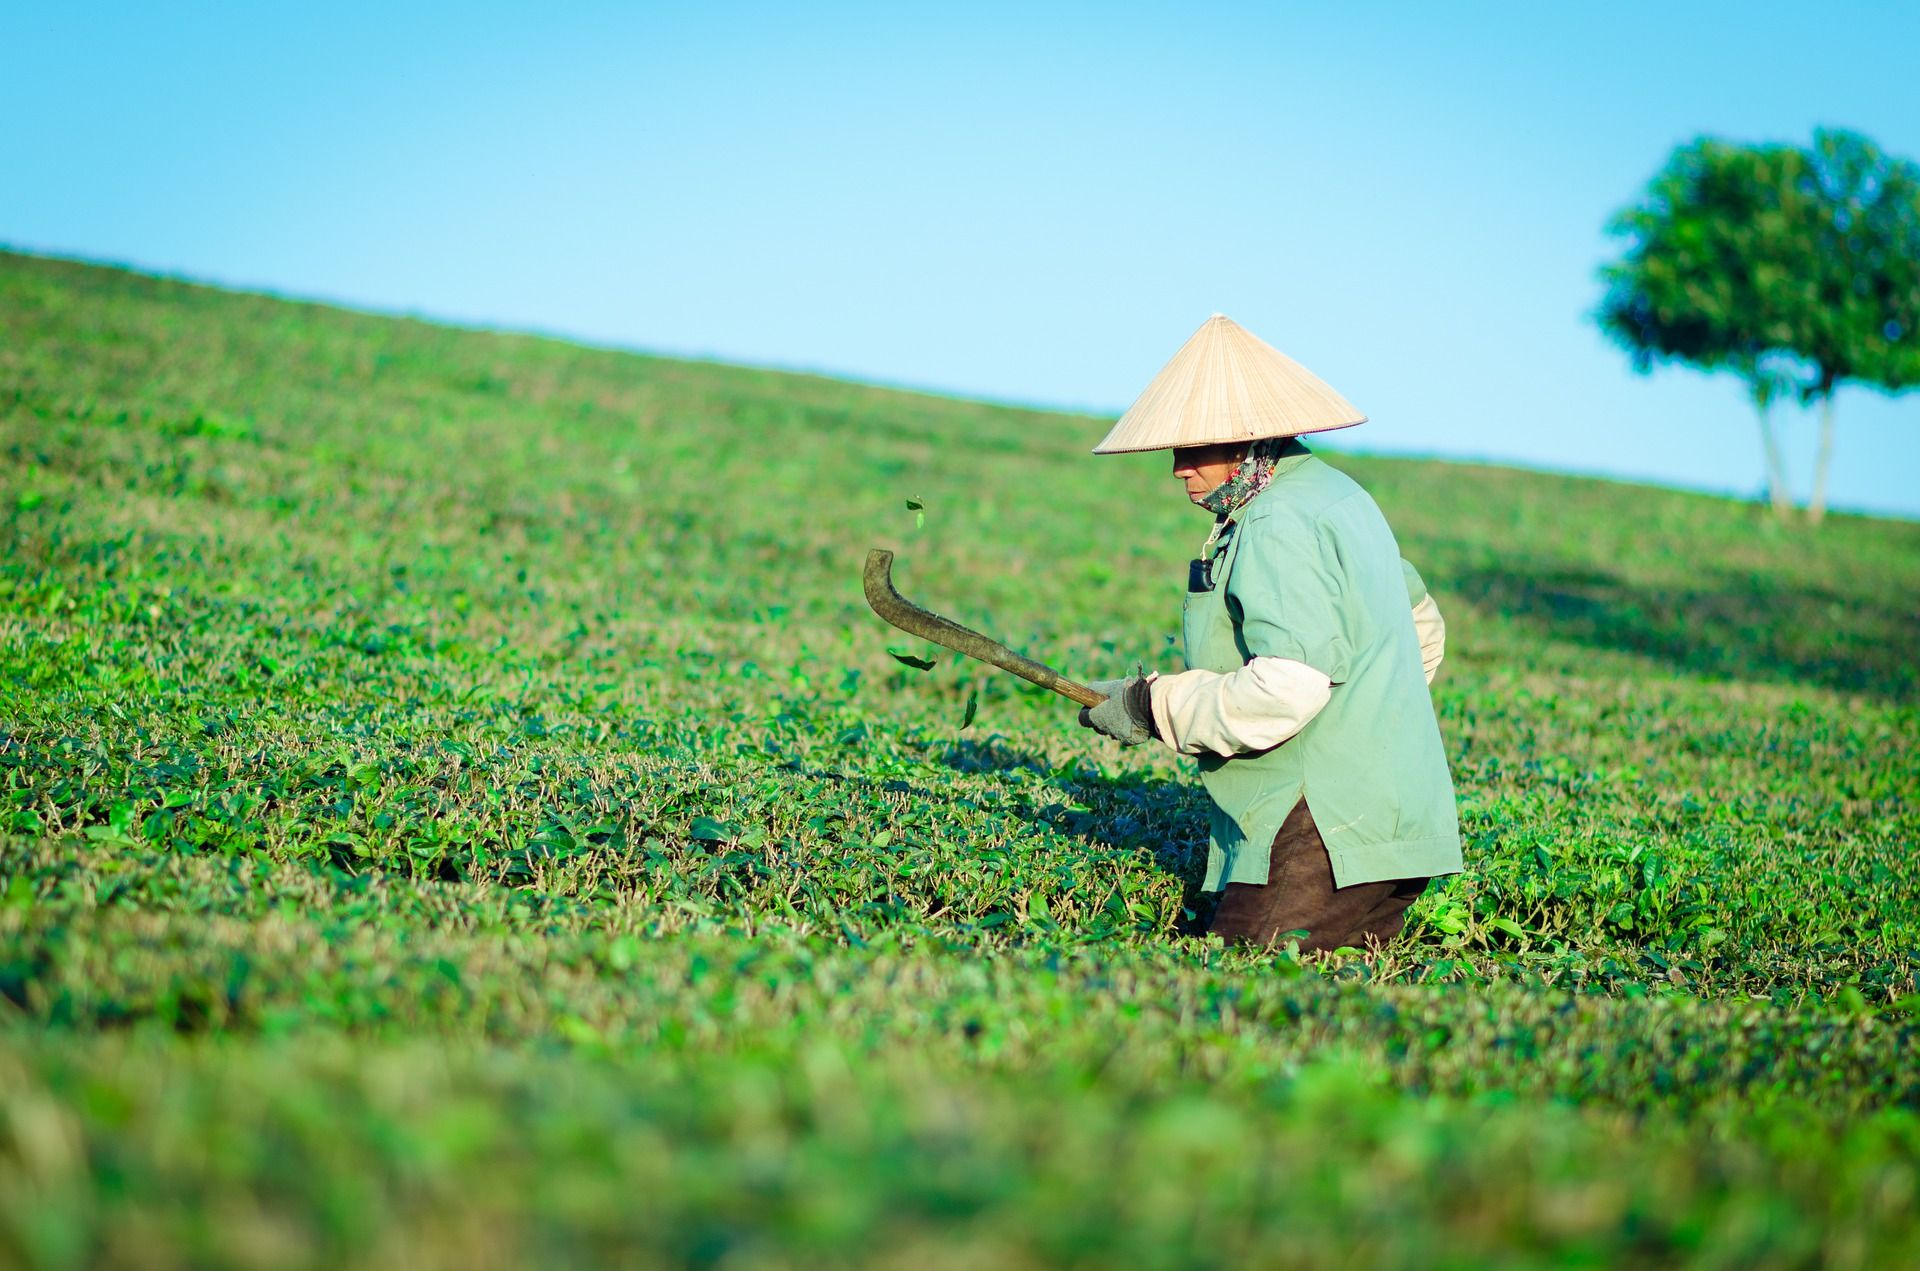 Green tea comes to us from Asia. Photo: Pixabay.com | License: CC0 public domain